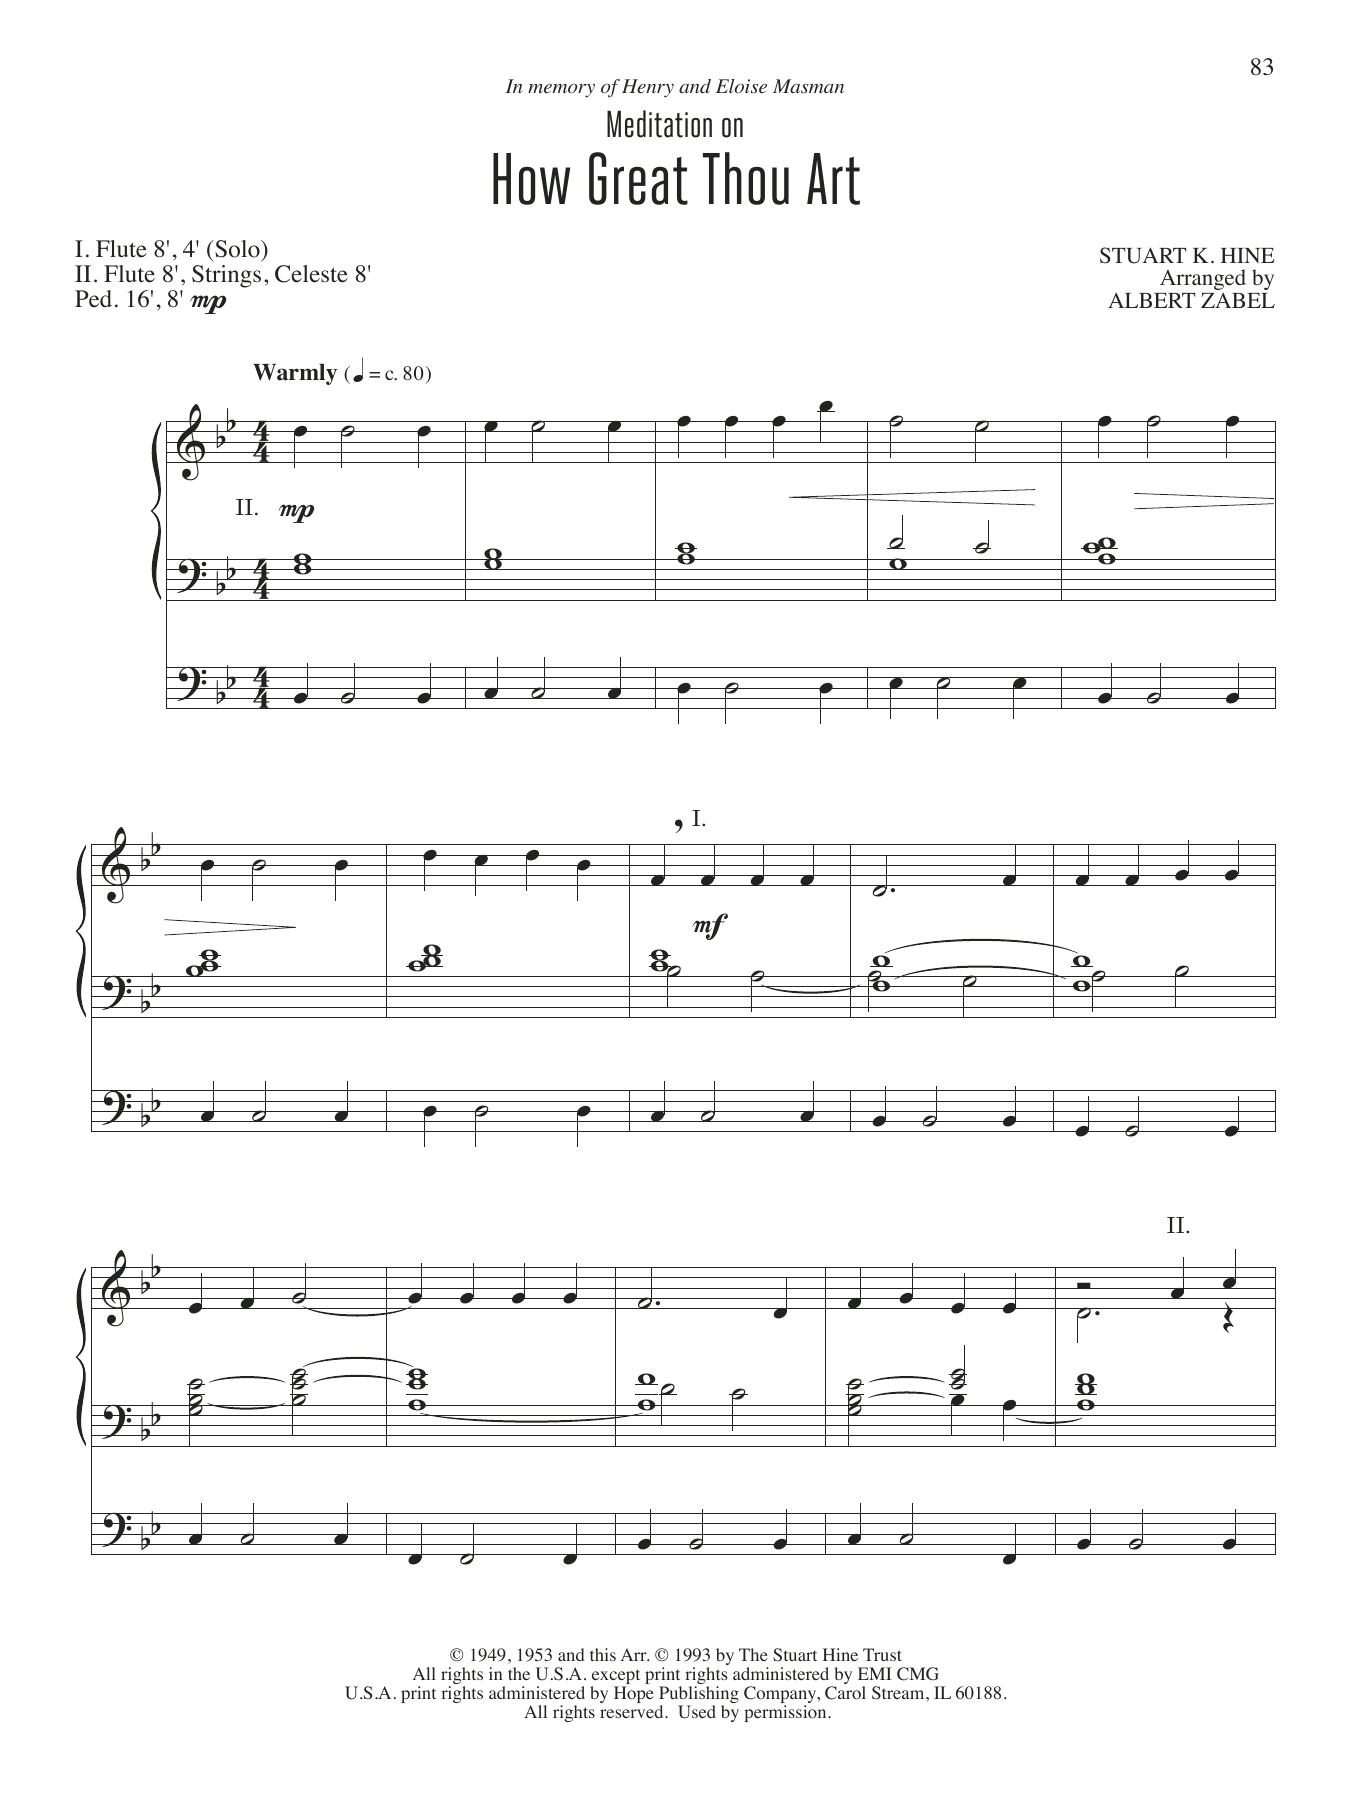 Meditation on How Great Thou Art Sheet Music